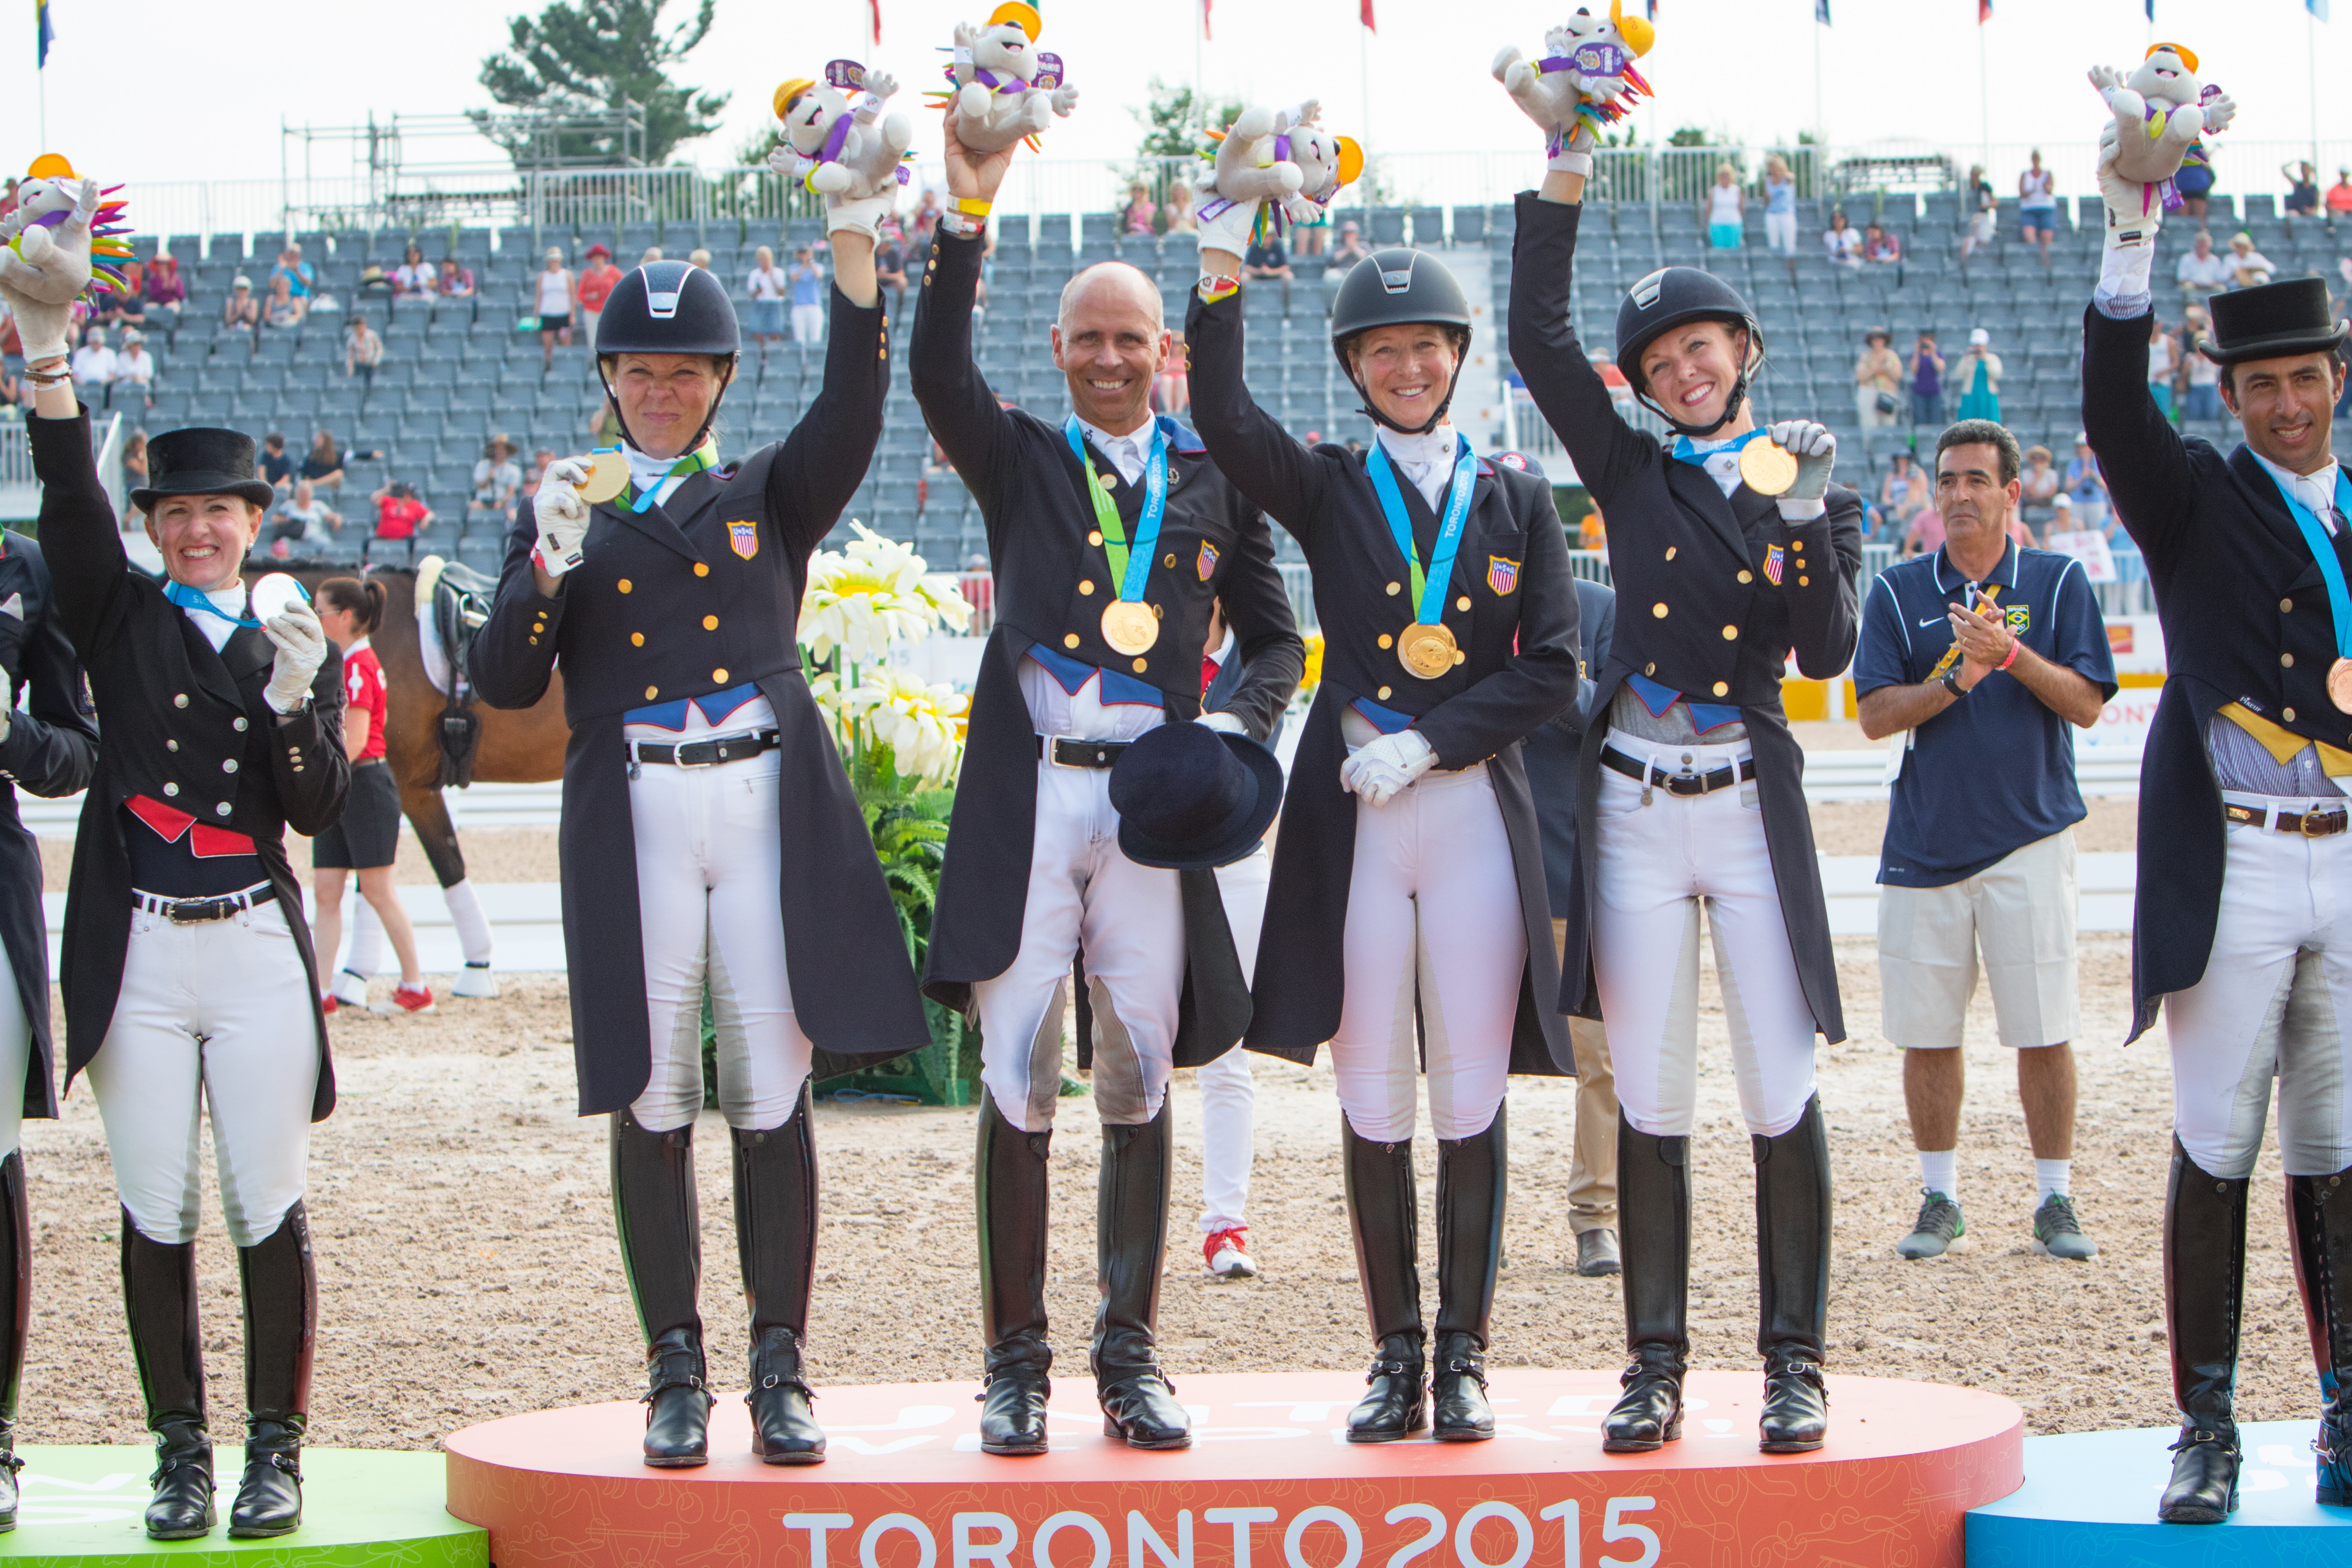 US Gold Medal Team, Kimberley Herslow, Steffen Peters, Sabine Schut-Kery and Laura Graves on the podium at the OLG Caledon Pan Am Equestrian Park during the Toronto 2015 Pan American Games in Caledon, Ontario, Canada. Pic StockImageServices.com